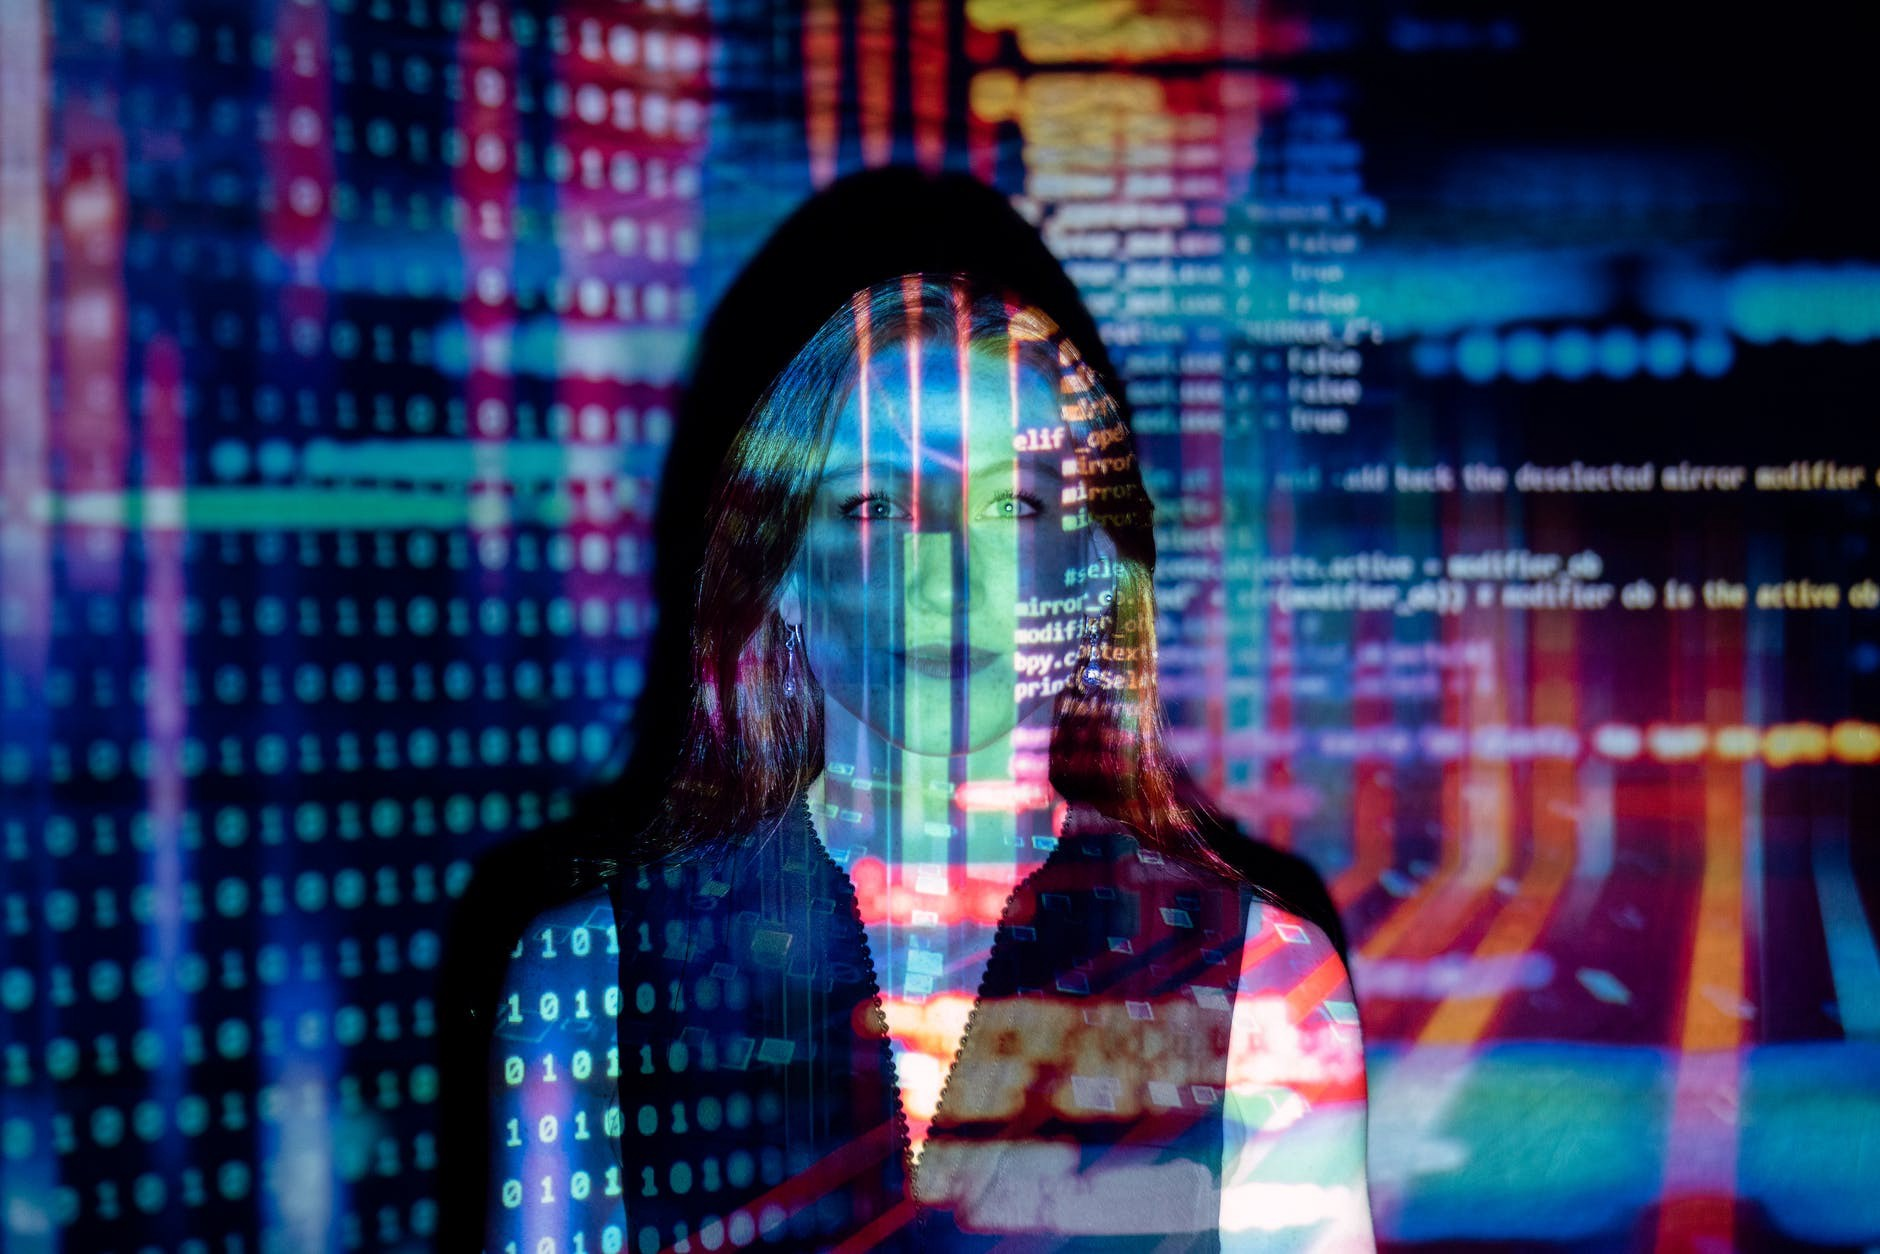 code projected on girl